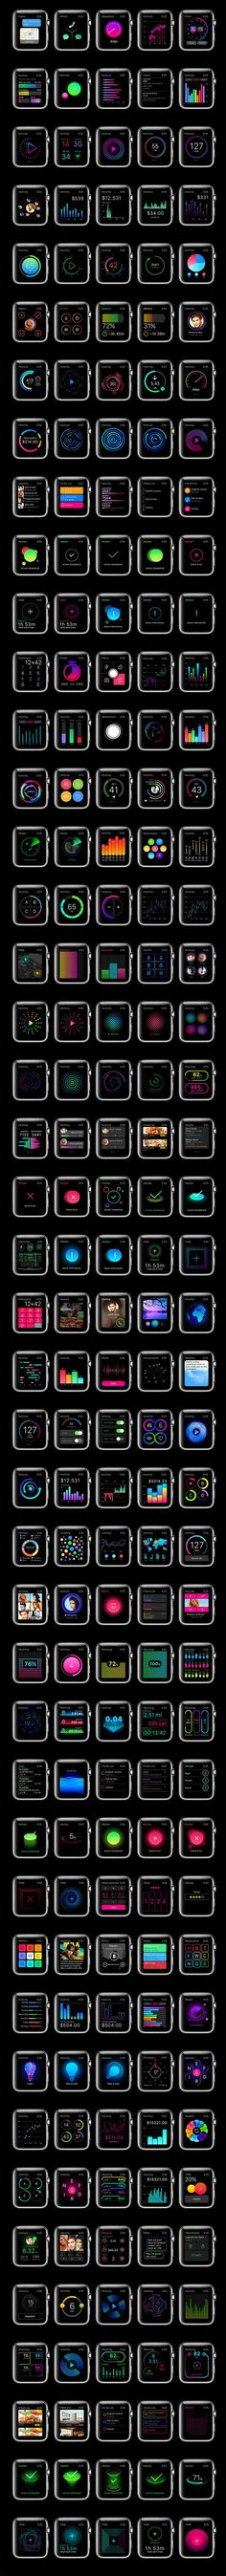 <3 Pin it and win a trip to New York, Barcelona, Berlin, Rome or London. - Apple Watch UI Kit | + Enahnce your #MacBook / #iMac experience , visit: http://pdsp.us/macbookcleanse